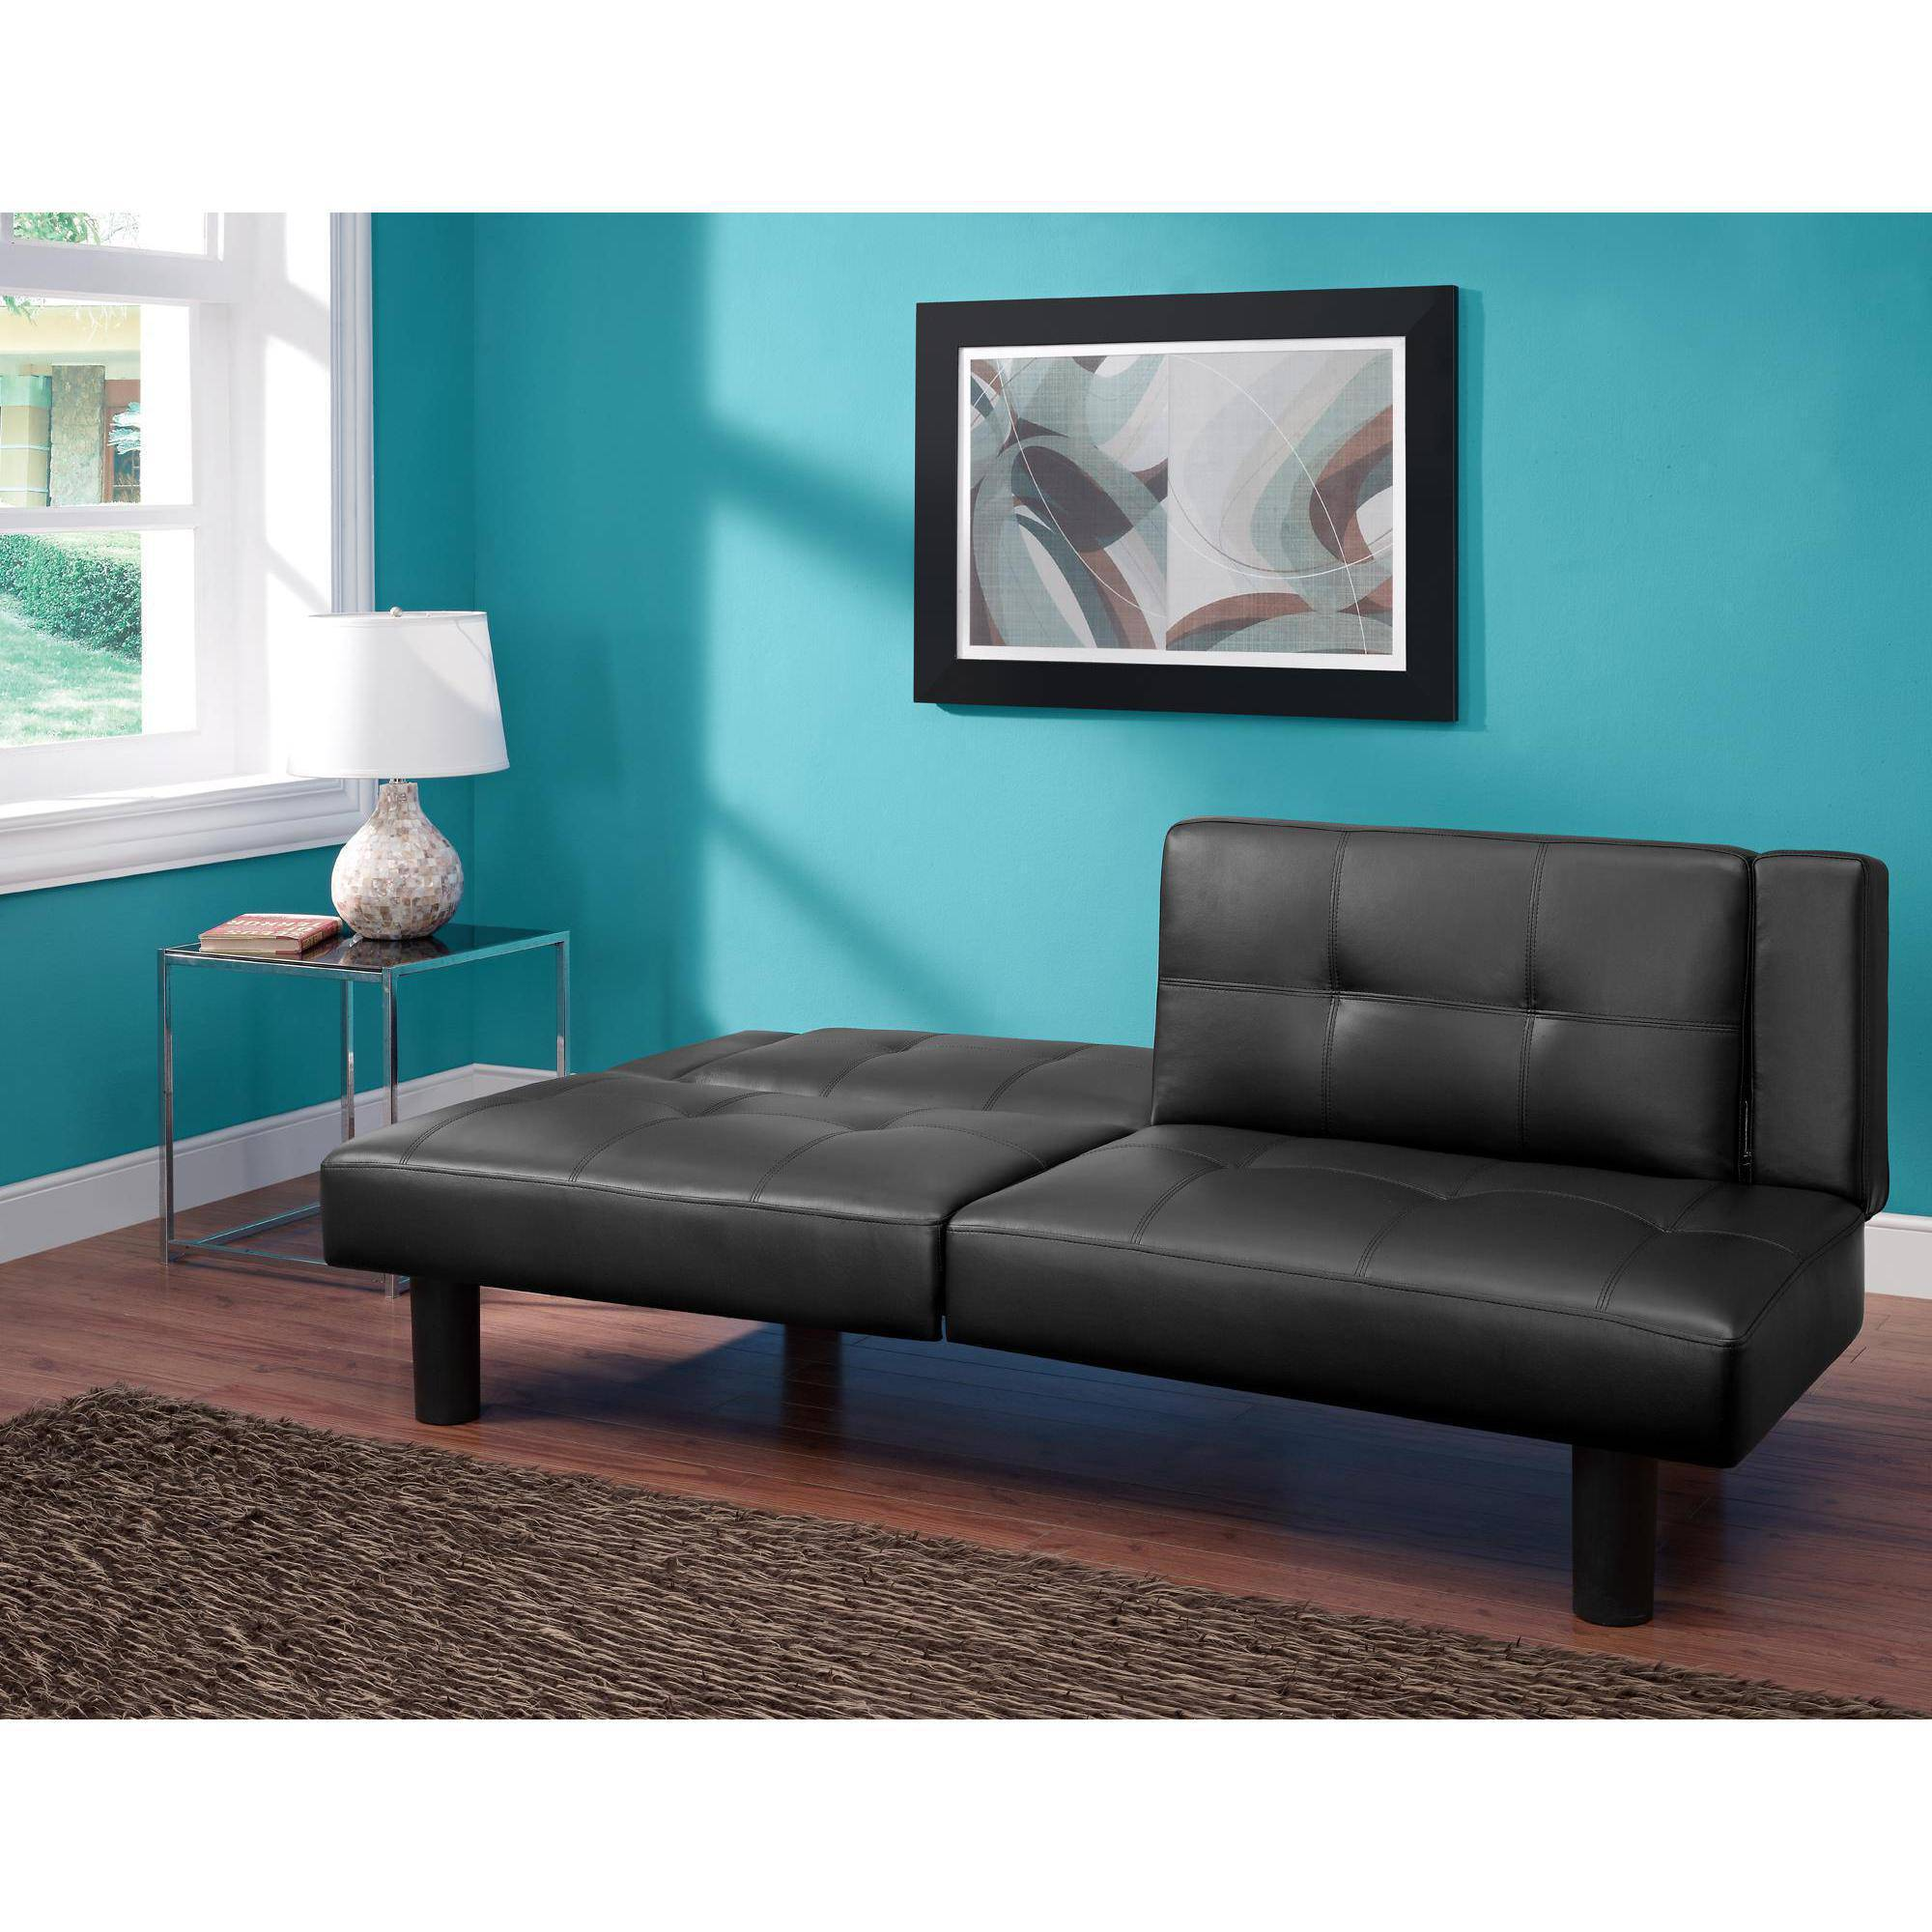 Mainstays Connectrix Faux Leather Futon, Multiple Colors